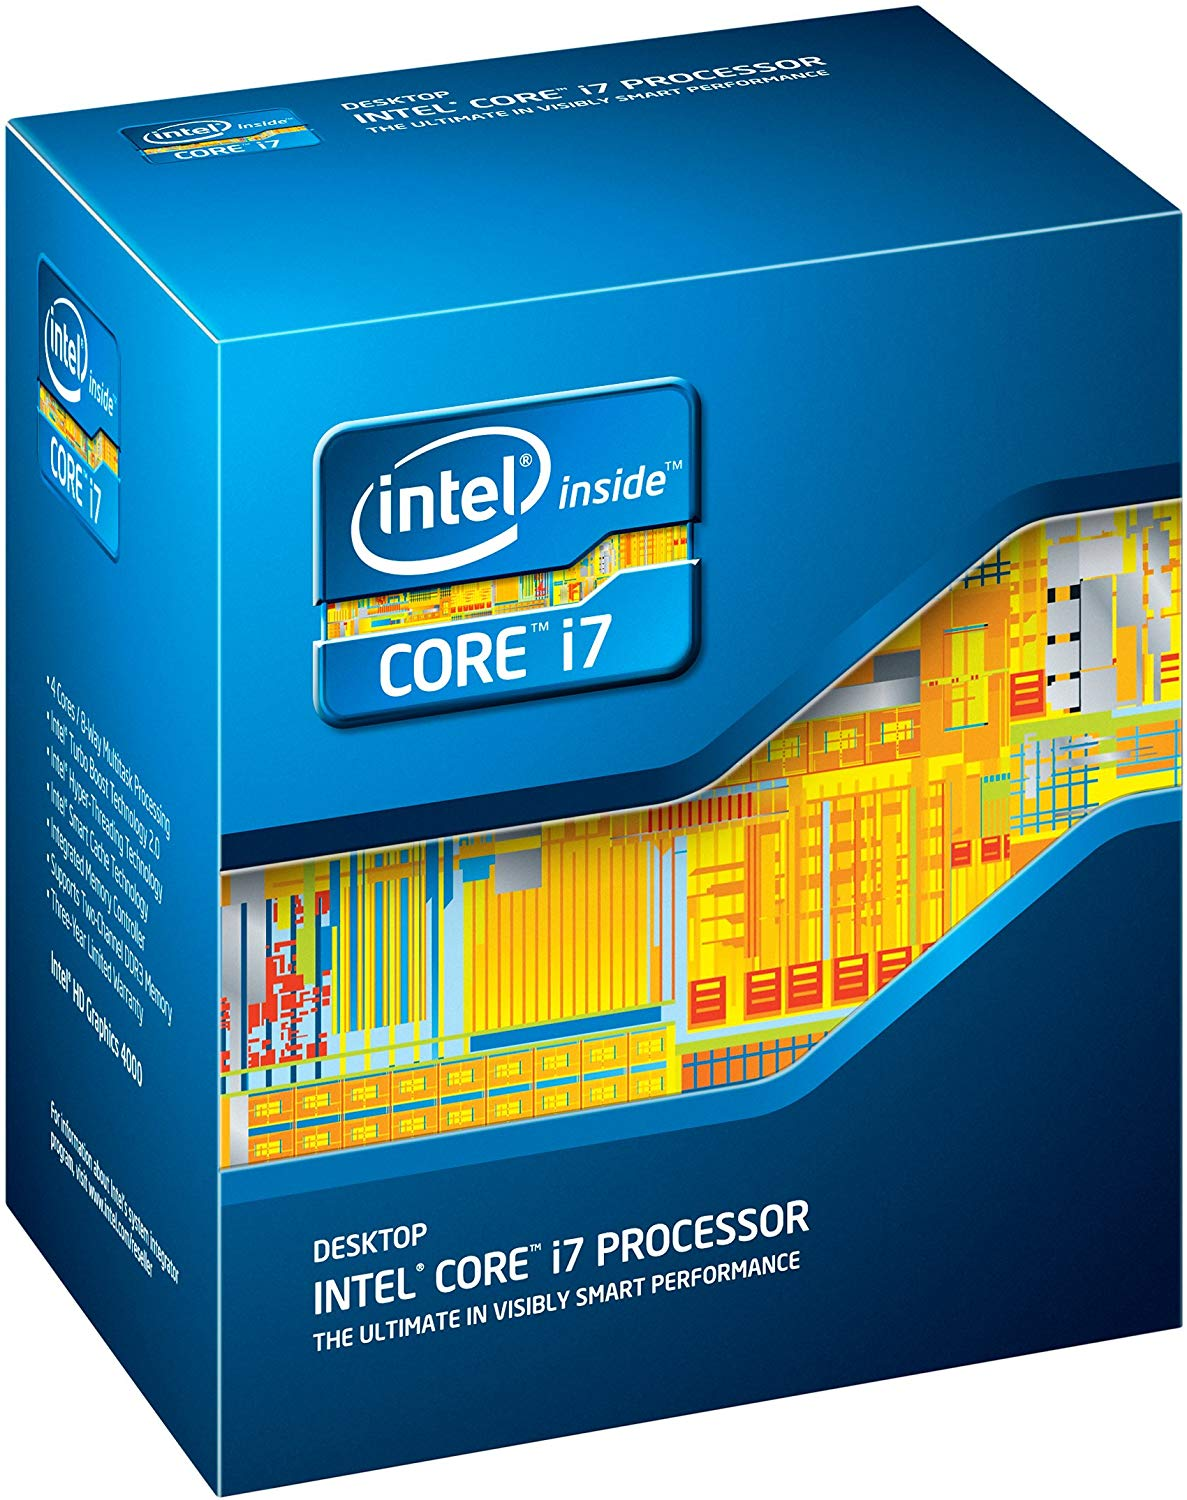 Intel Core i7-3770K Ivy Bridge Quad-Core 3.5GHz (3.9GHz Turbo) LGA 1155 77W BX80637I73770K Desktop Processor Intel HD Graphics 4000